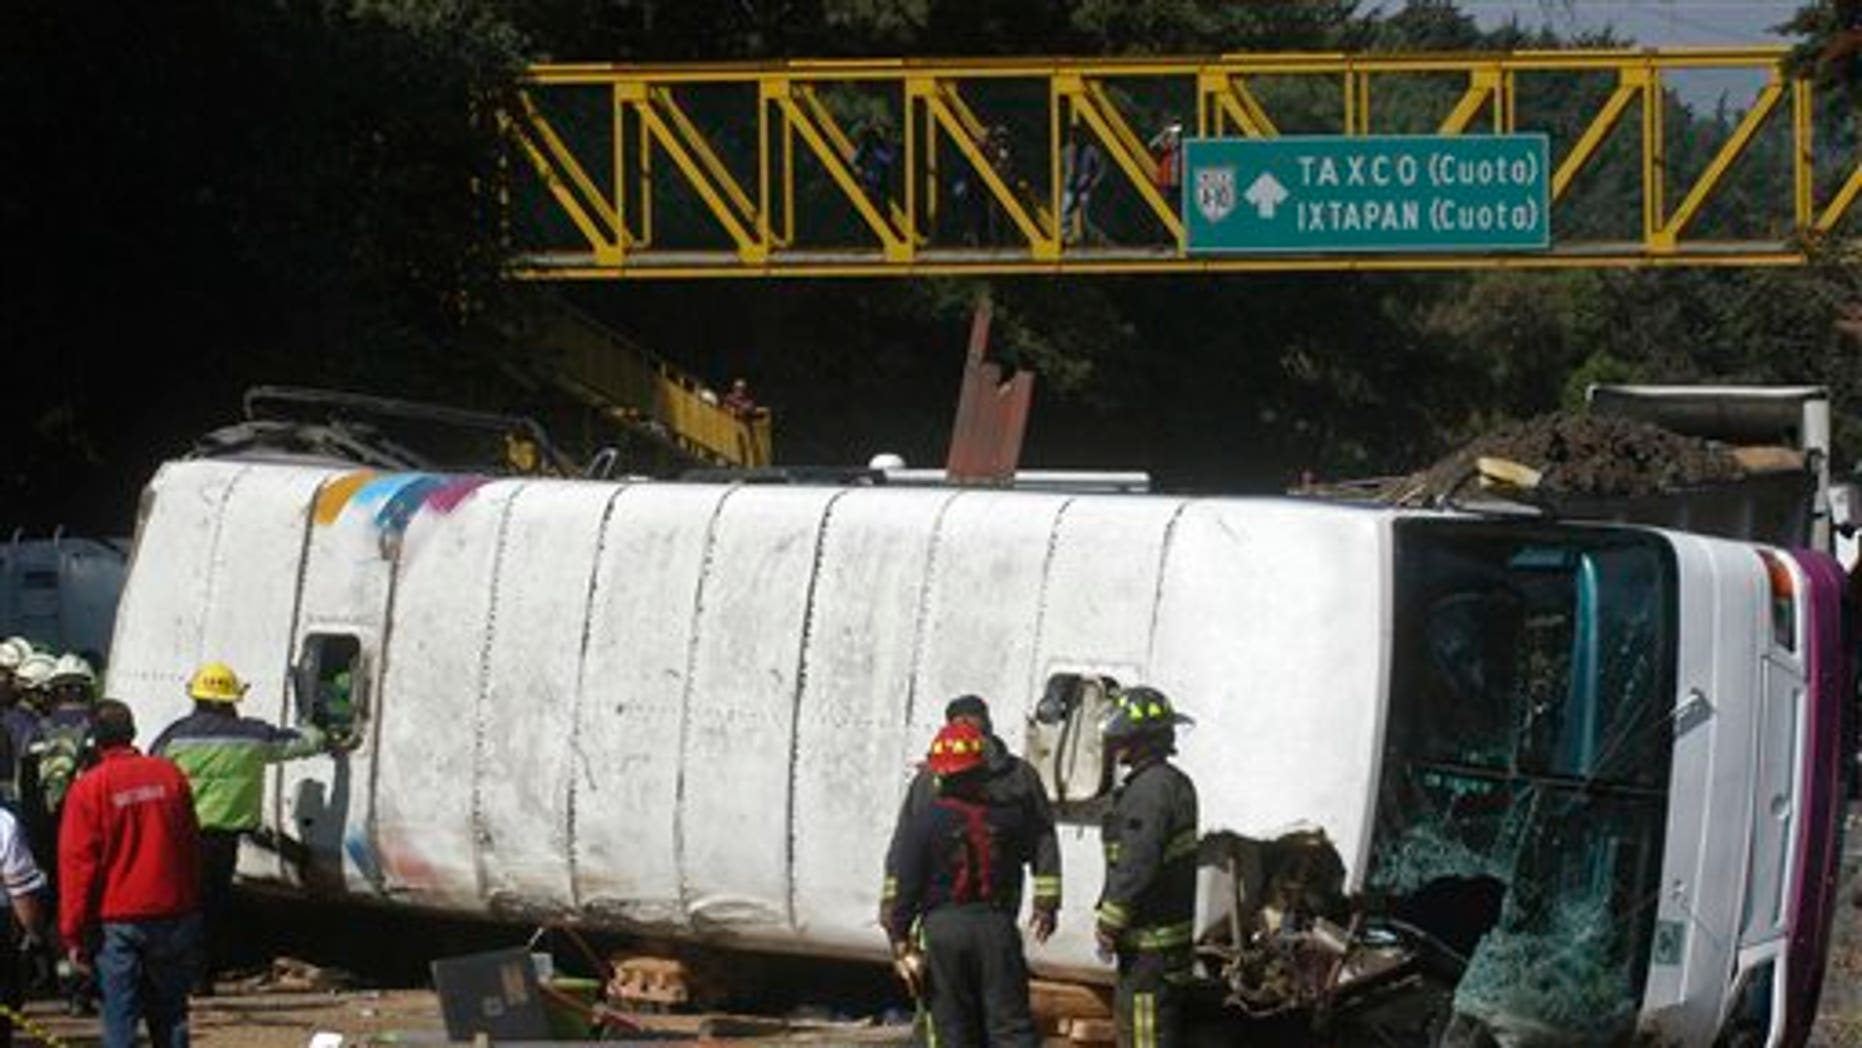 April 12, 2012: Emergency responders stand next to a passenger bus that was struck by a cargo truck in a highway on the outskirts of Mexico City, on Thursday. The bus was carrying students from the National Autonomous University of Mexico (UNAM) headed to do field studies. At least 6 students and one professor were killed.